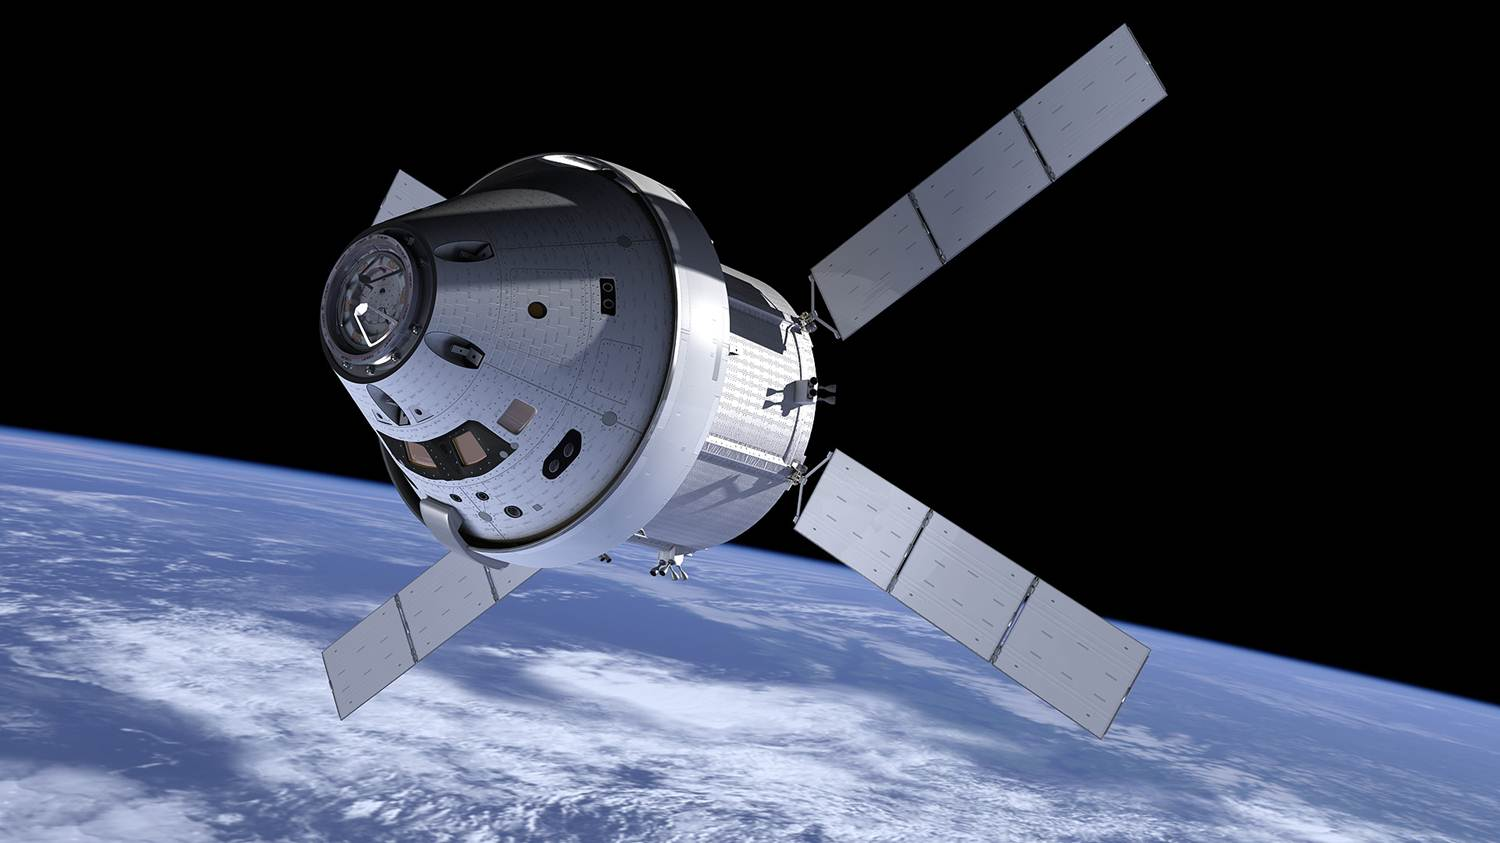 spacecraft_orion.jpg